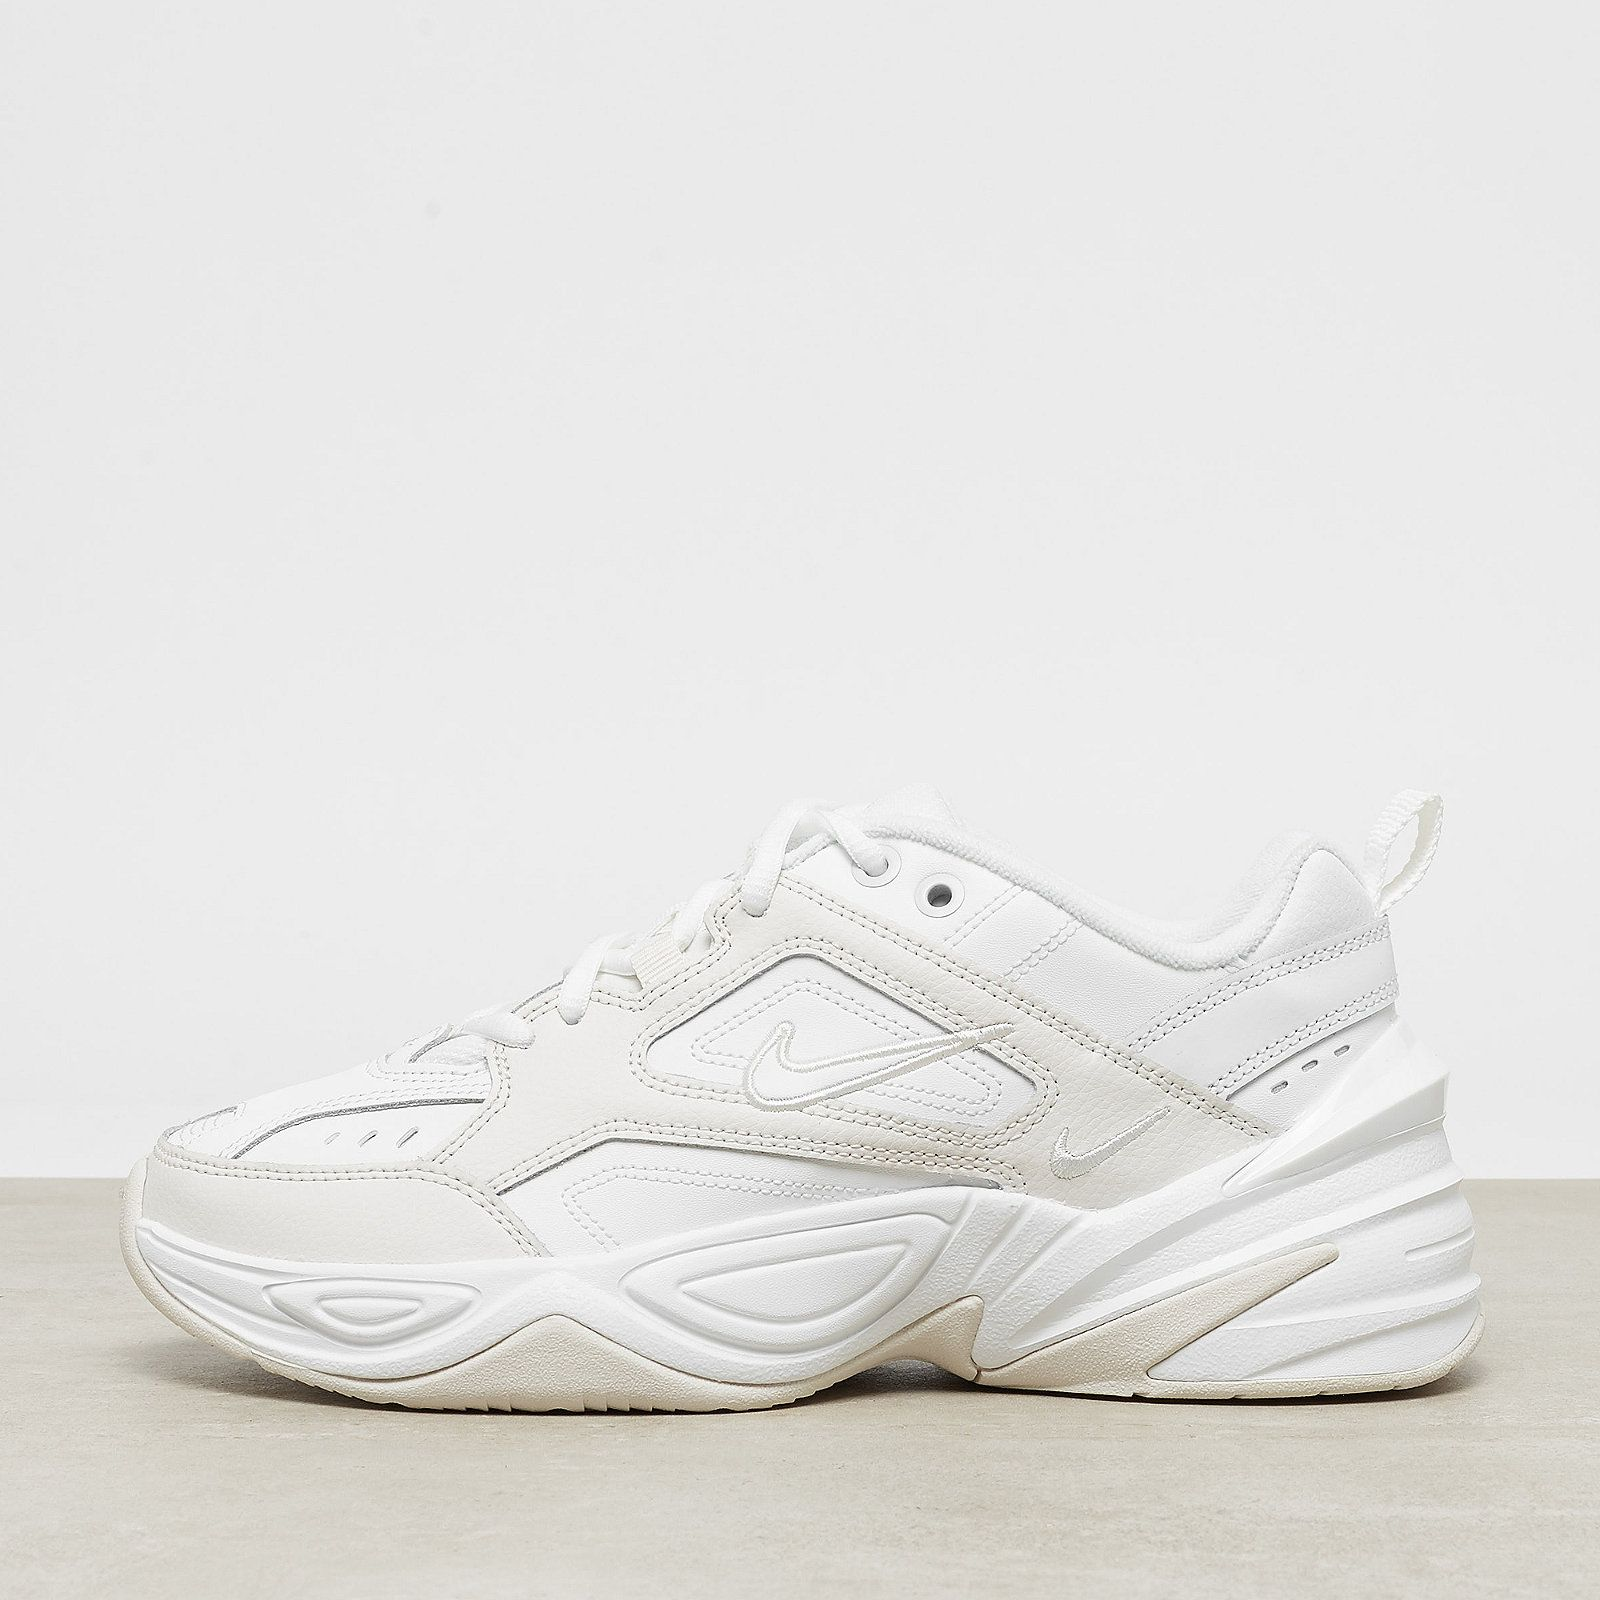 5c96c7fa8 NIKE M2K Tekno phantom summit white